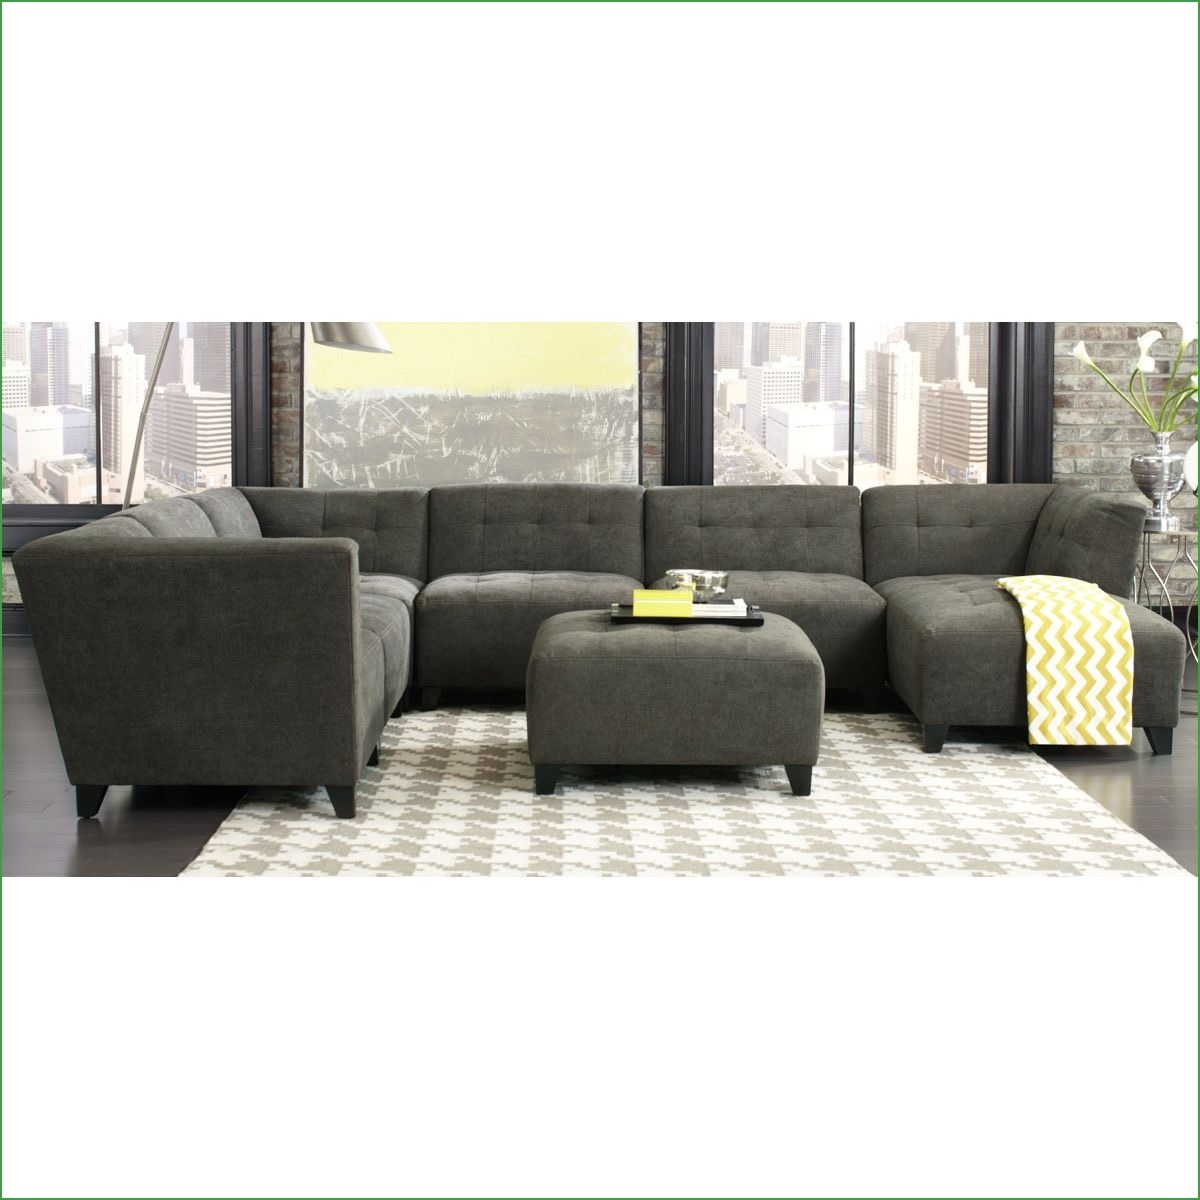 Rambler 6 Piece Modular Sectional 6 Piece Sectional 6 Piece Within 6 Piece Modular Sectional Sofa (Image 12 of 15)